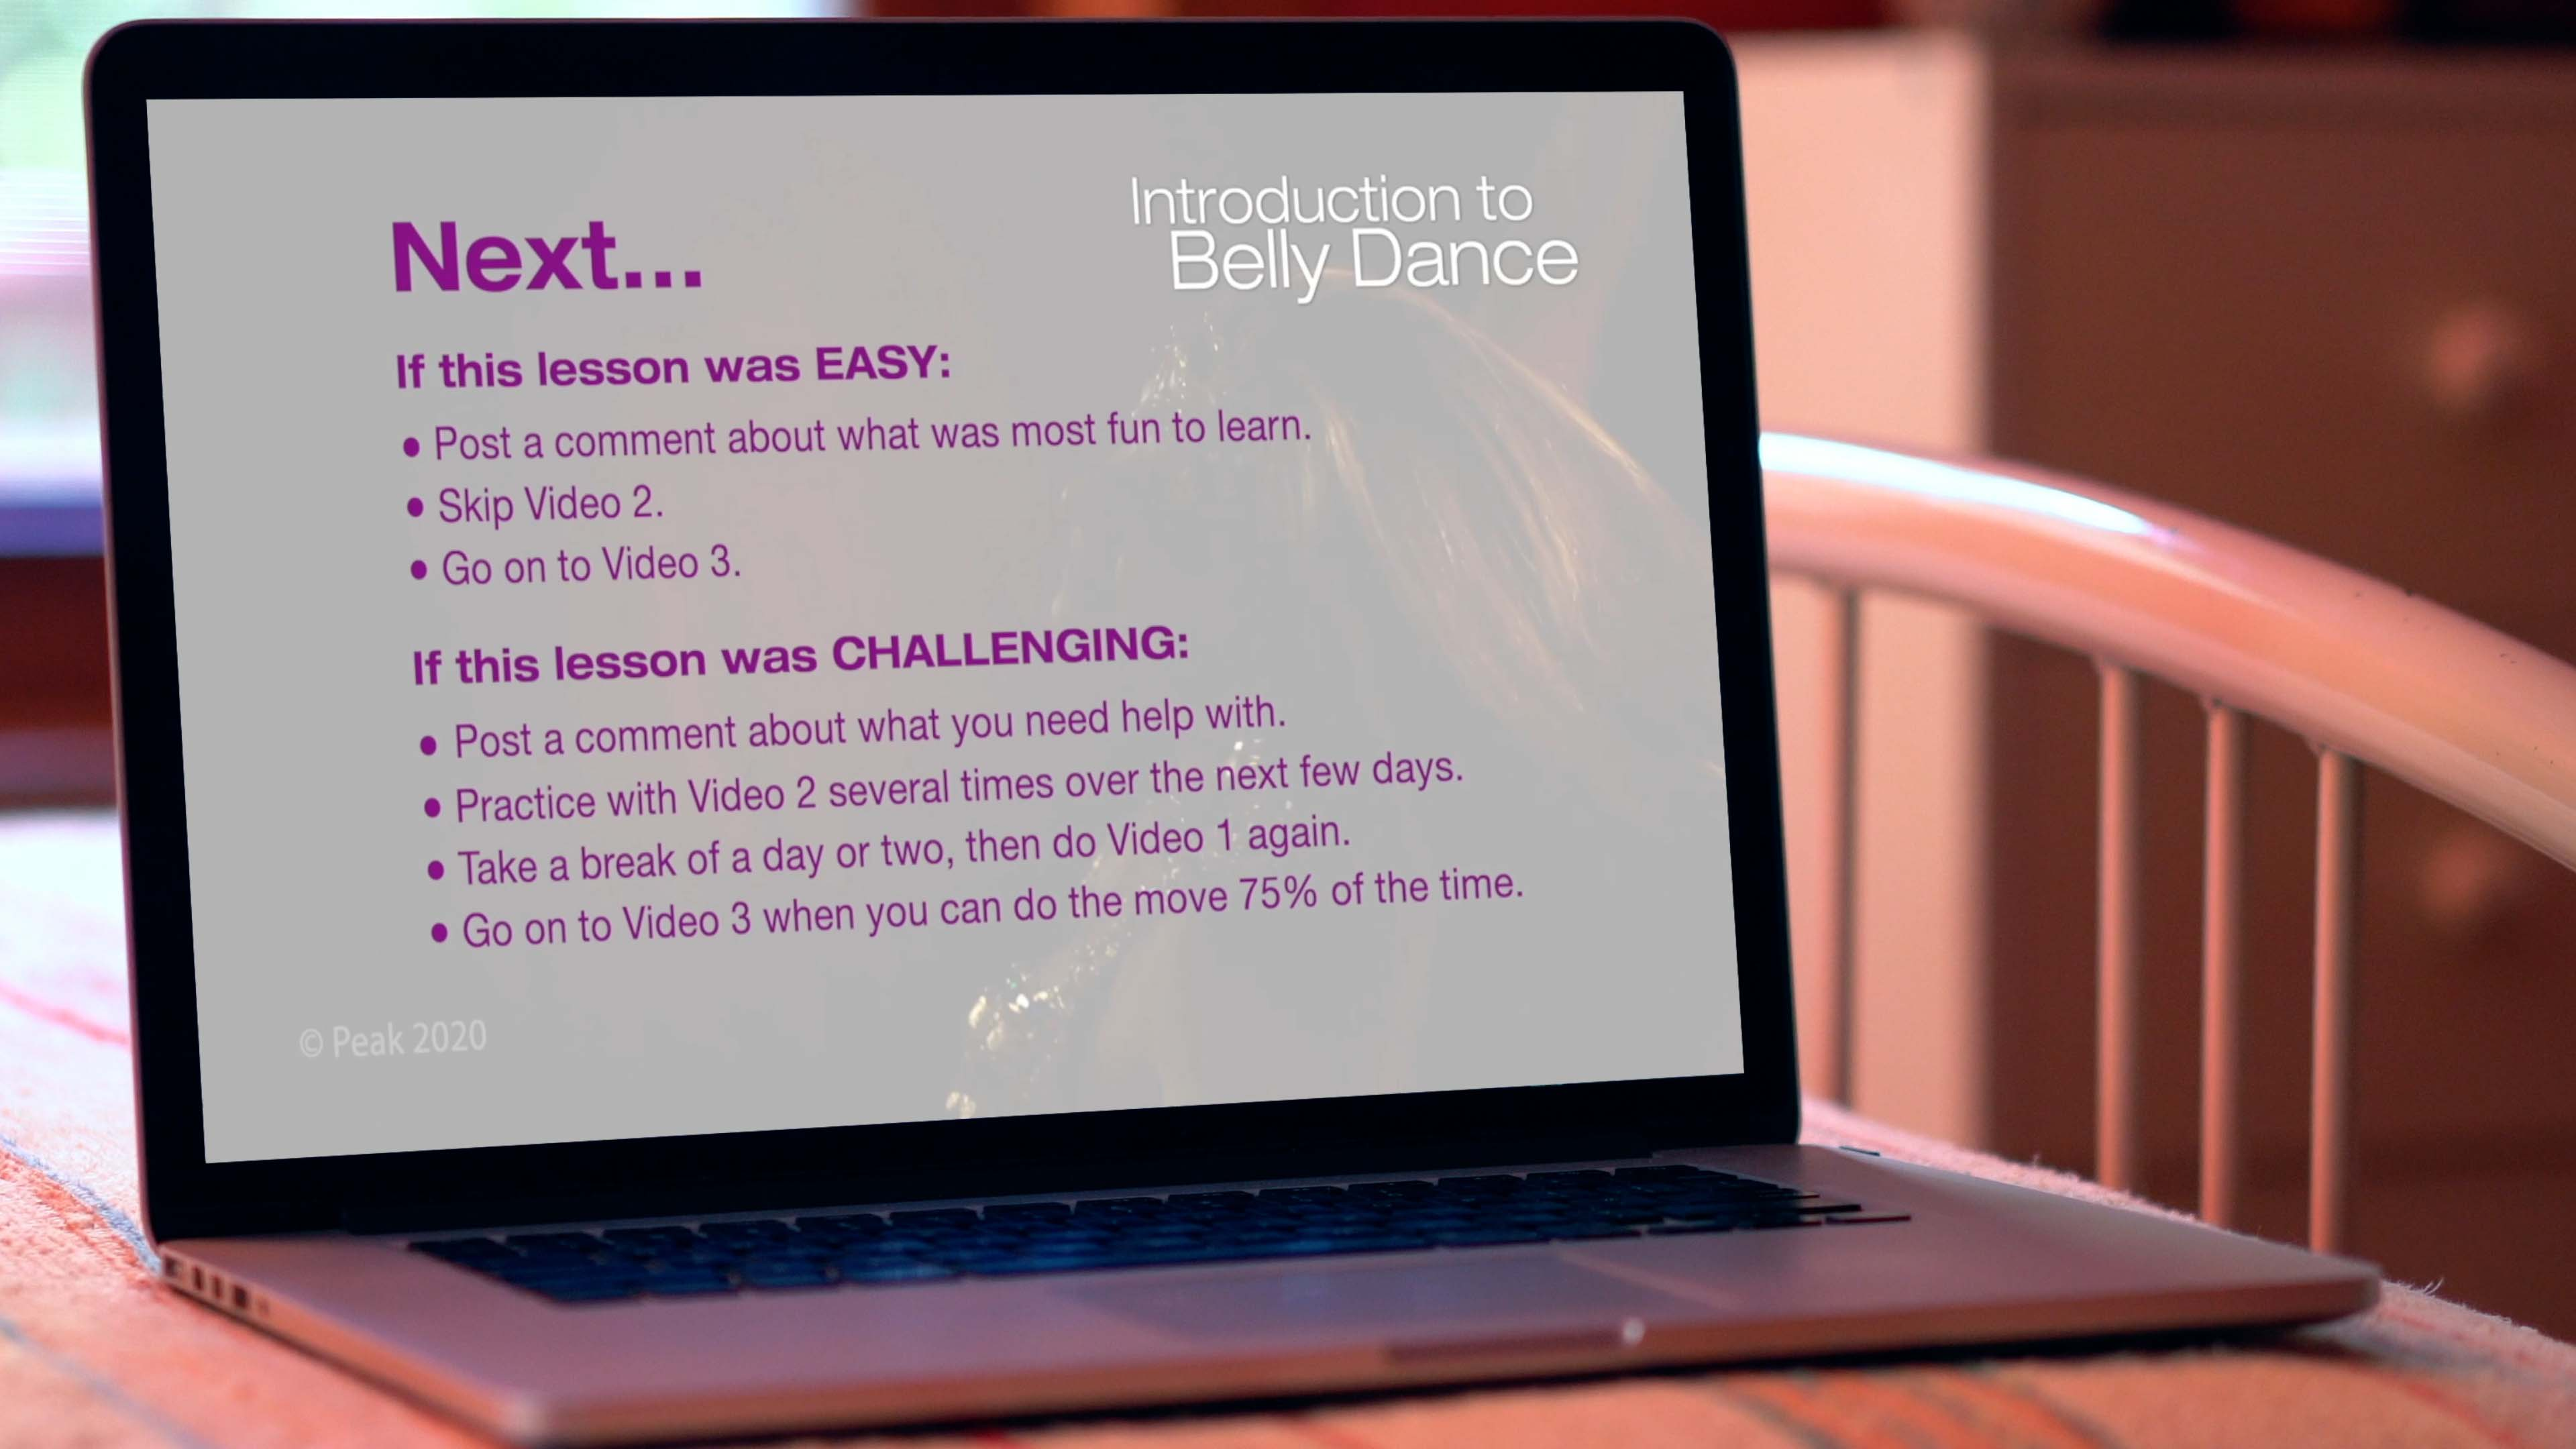 laptop computer on bed showing online belly dance course on screen